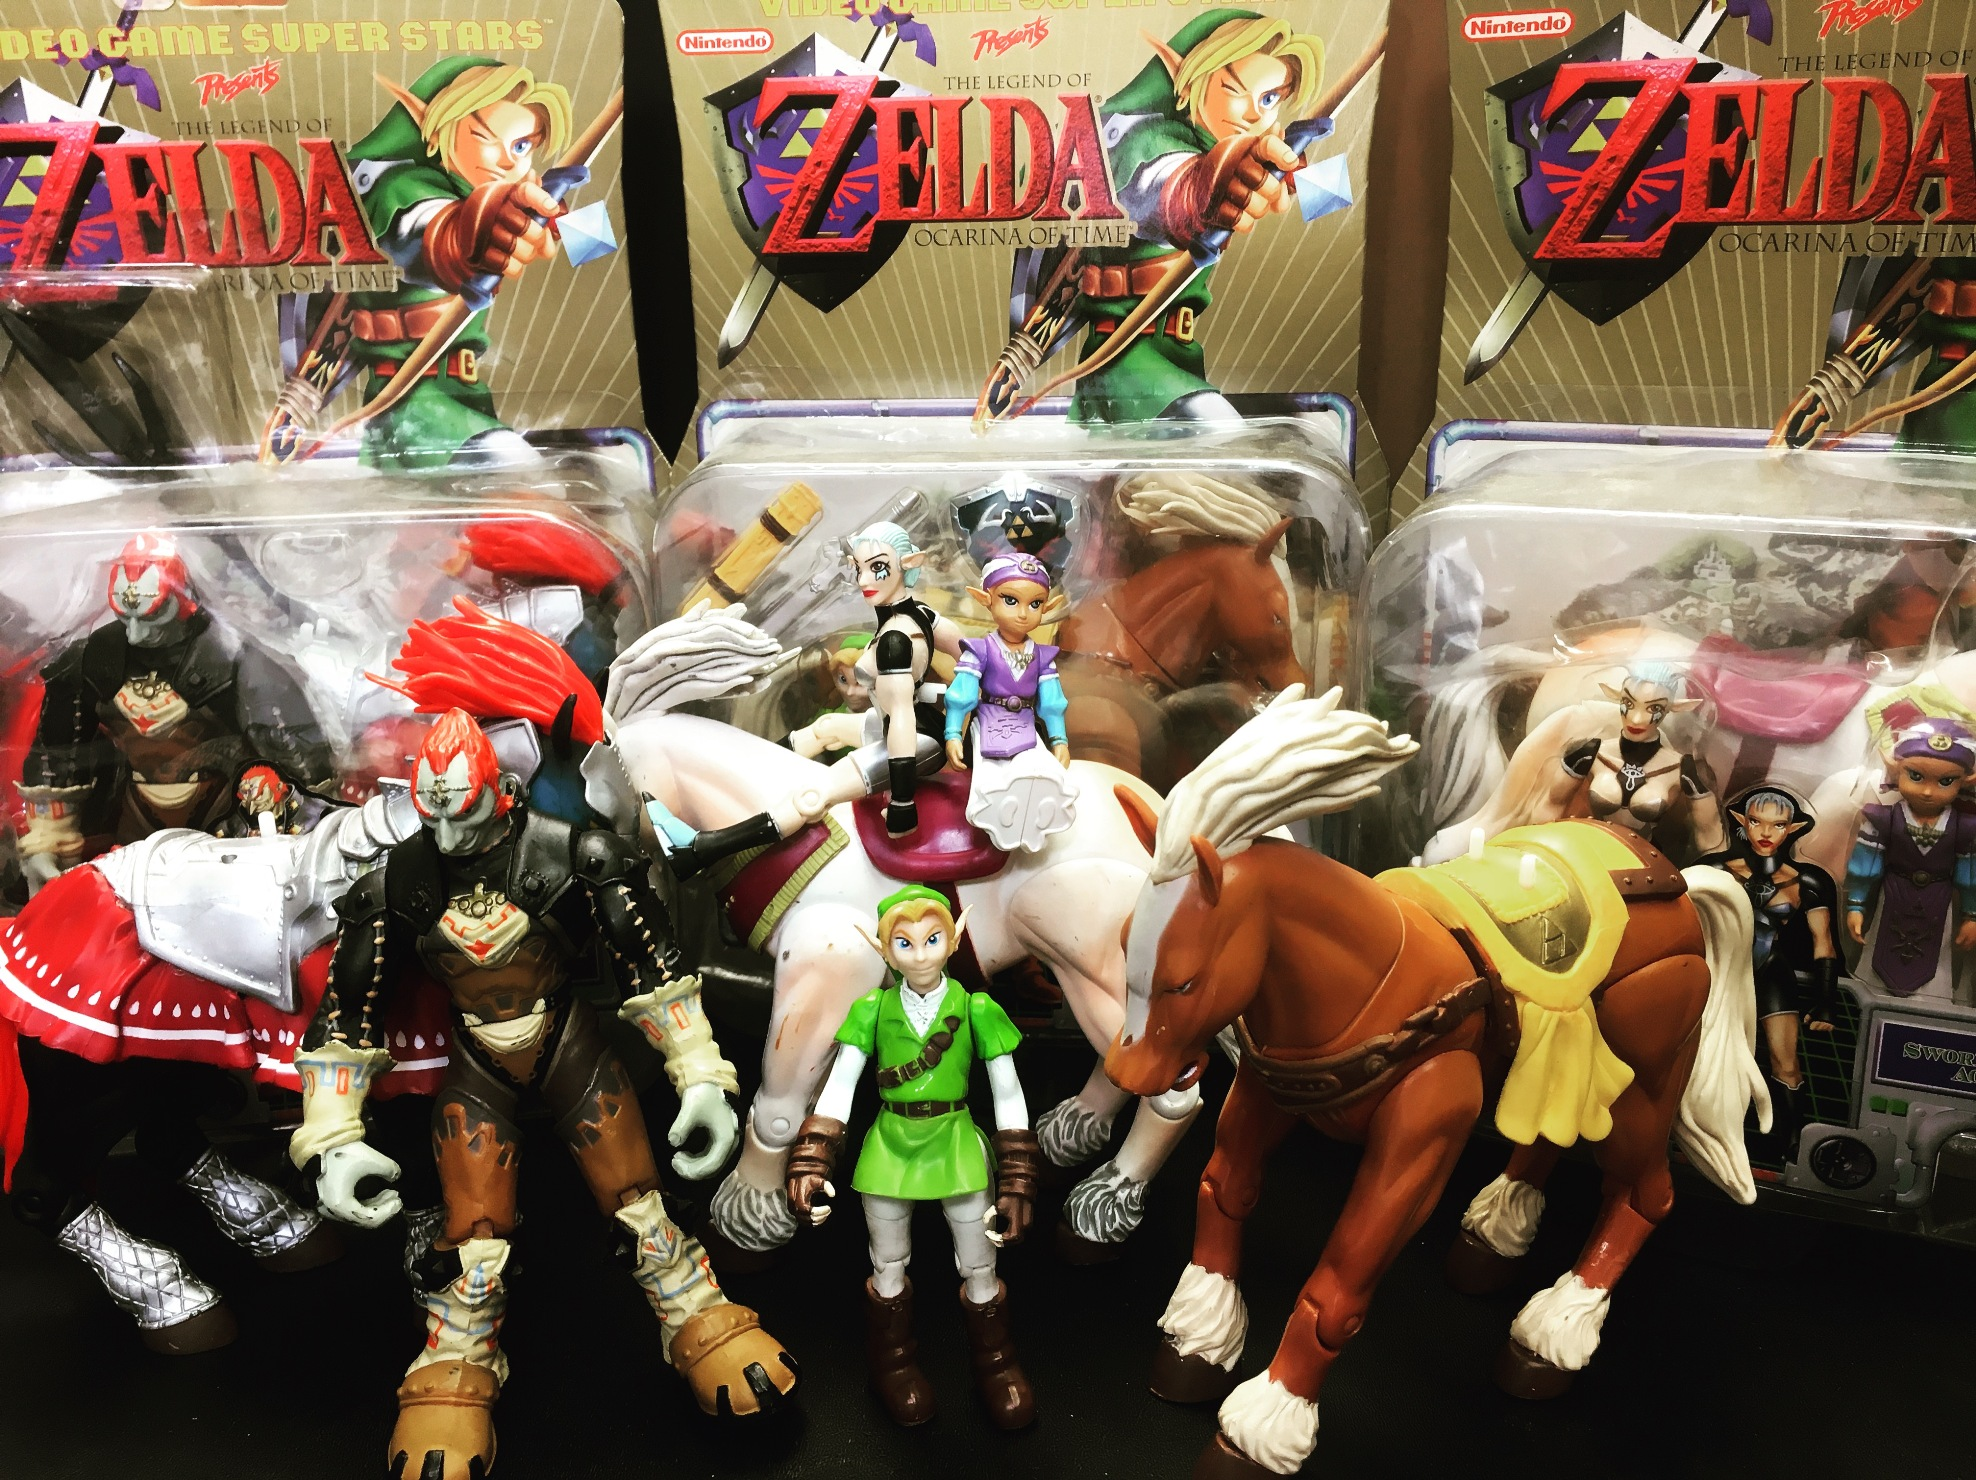 Toy Biz Toybiz 1999 2000 Legend of Zelda Ocarina of Time Videogame Superstars Video Game Super Stars Figures Link Ganondorf Impa Zelda Horses Toybiz Figures